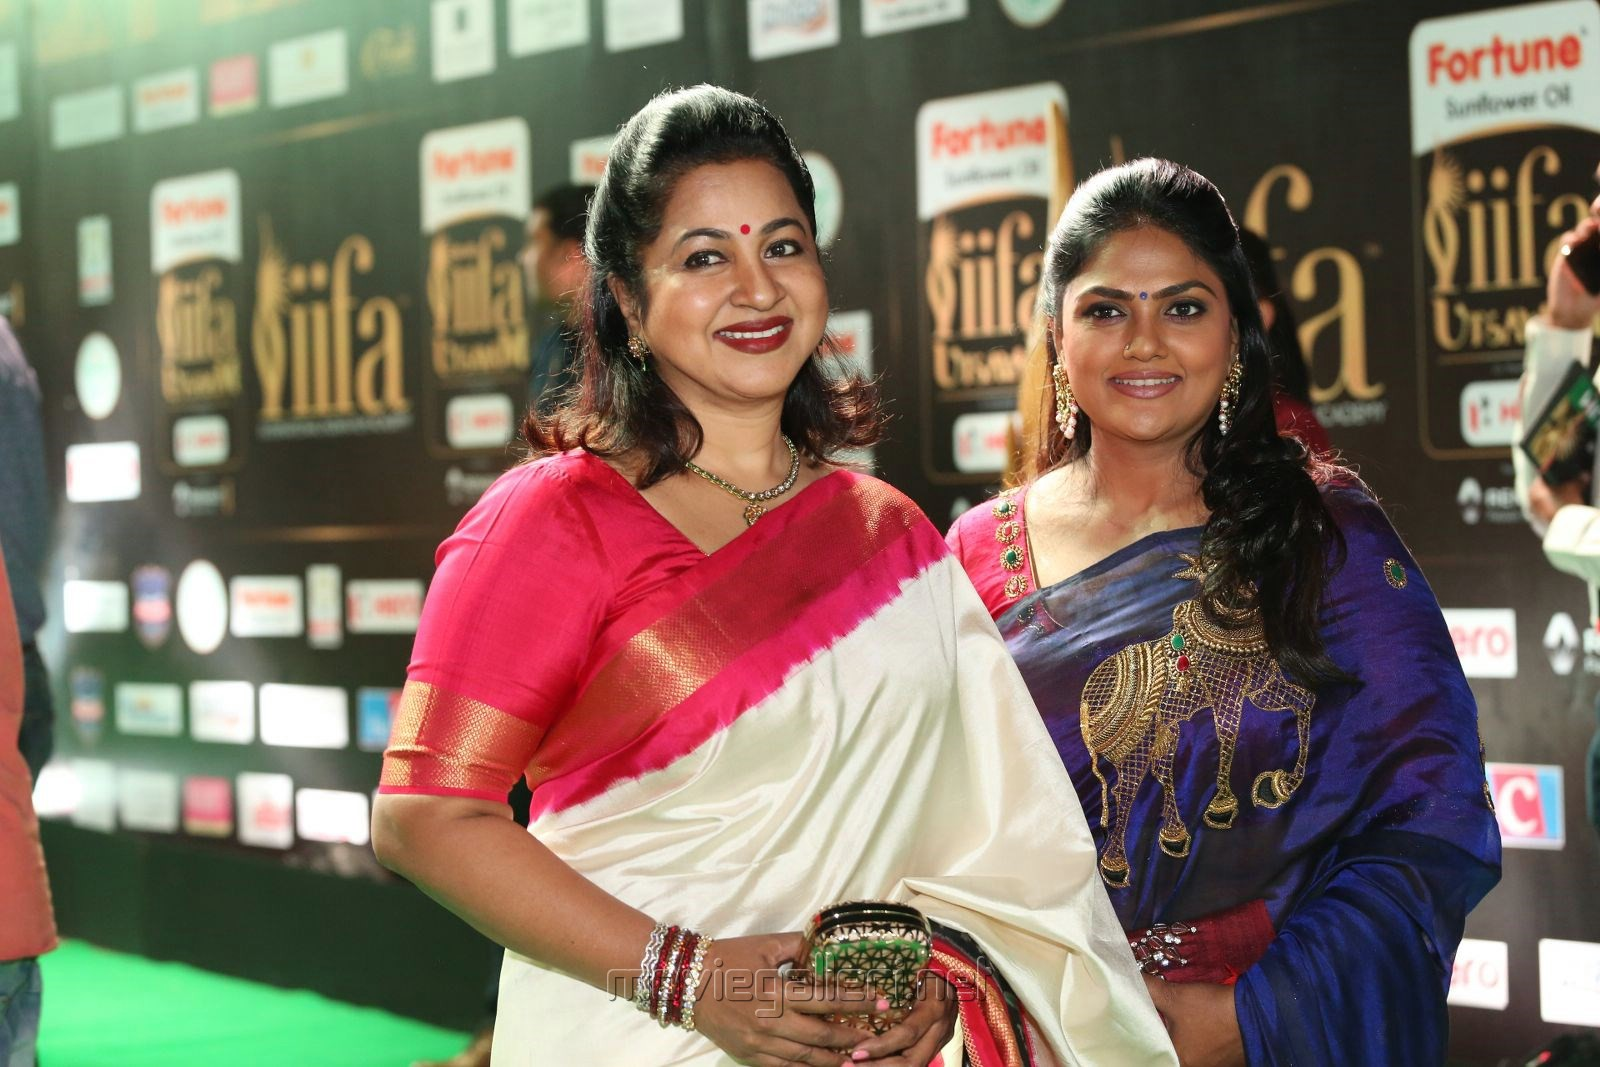 Radhika, Nirosha @ IIFA Utsavam 2017 Green Carpet (Day 1) Photos